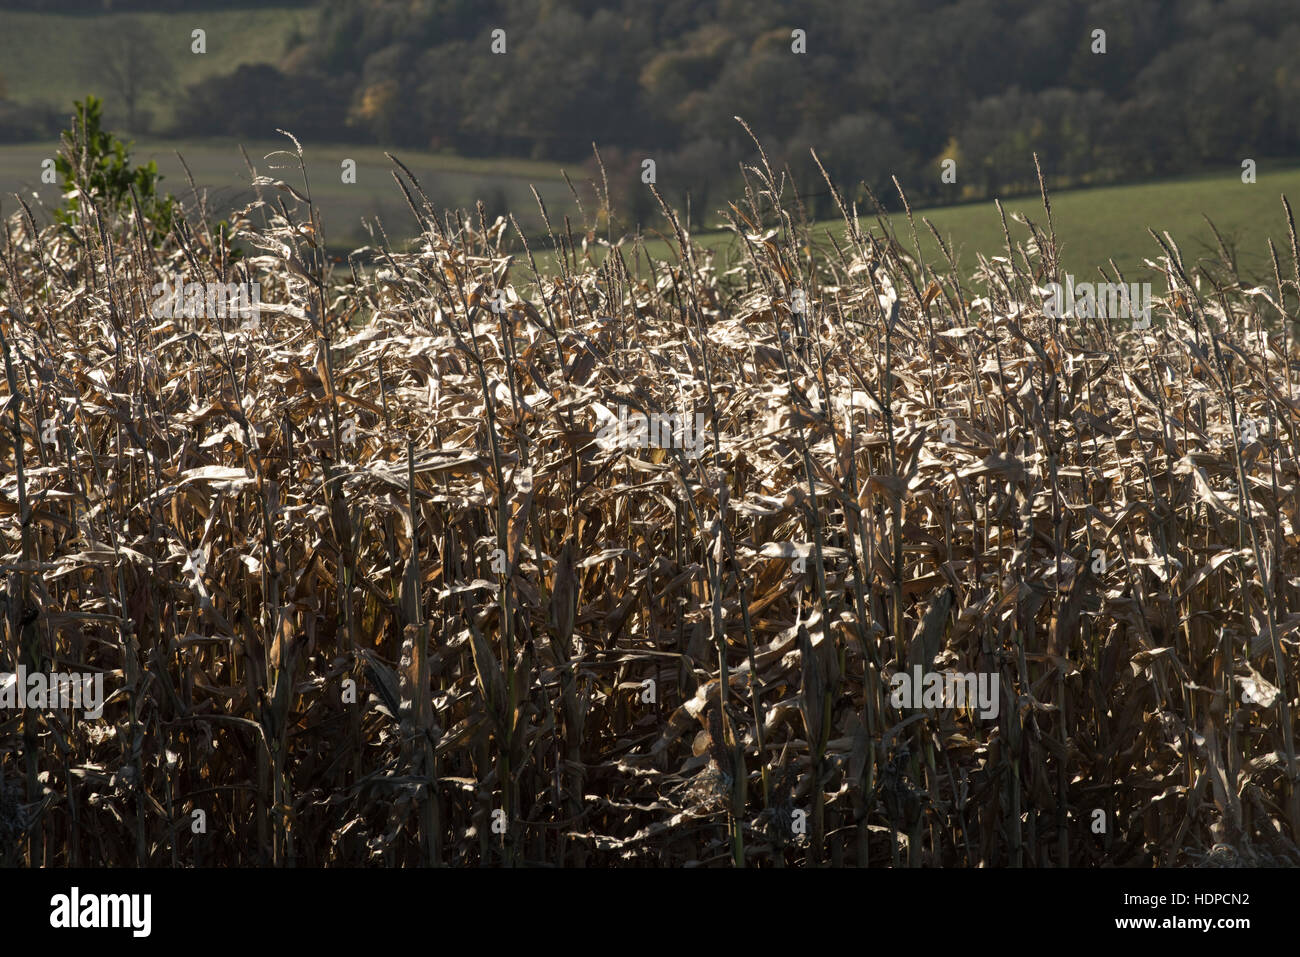 Maize game crop dry winter feed and cover for pheasants and partridges, Berkshire, November - Stock Image